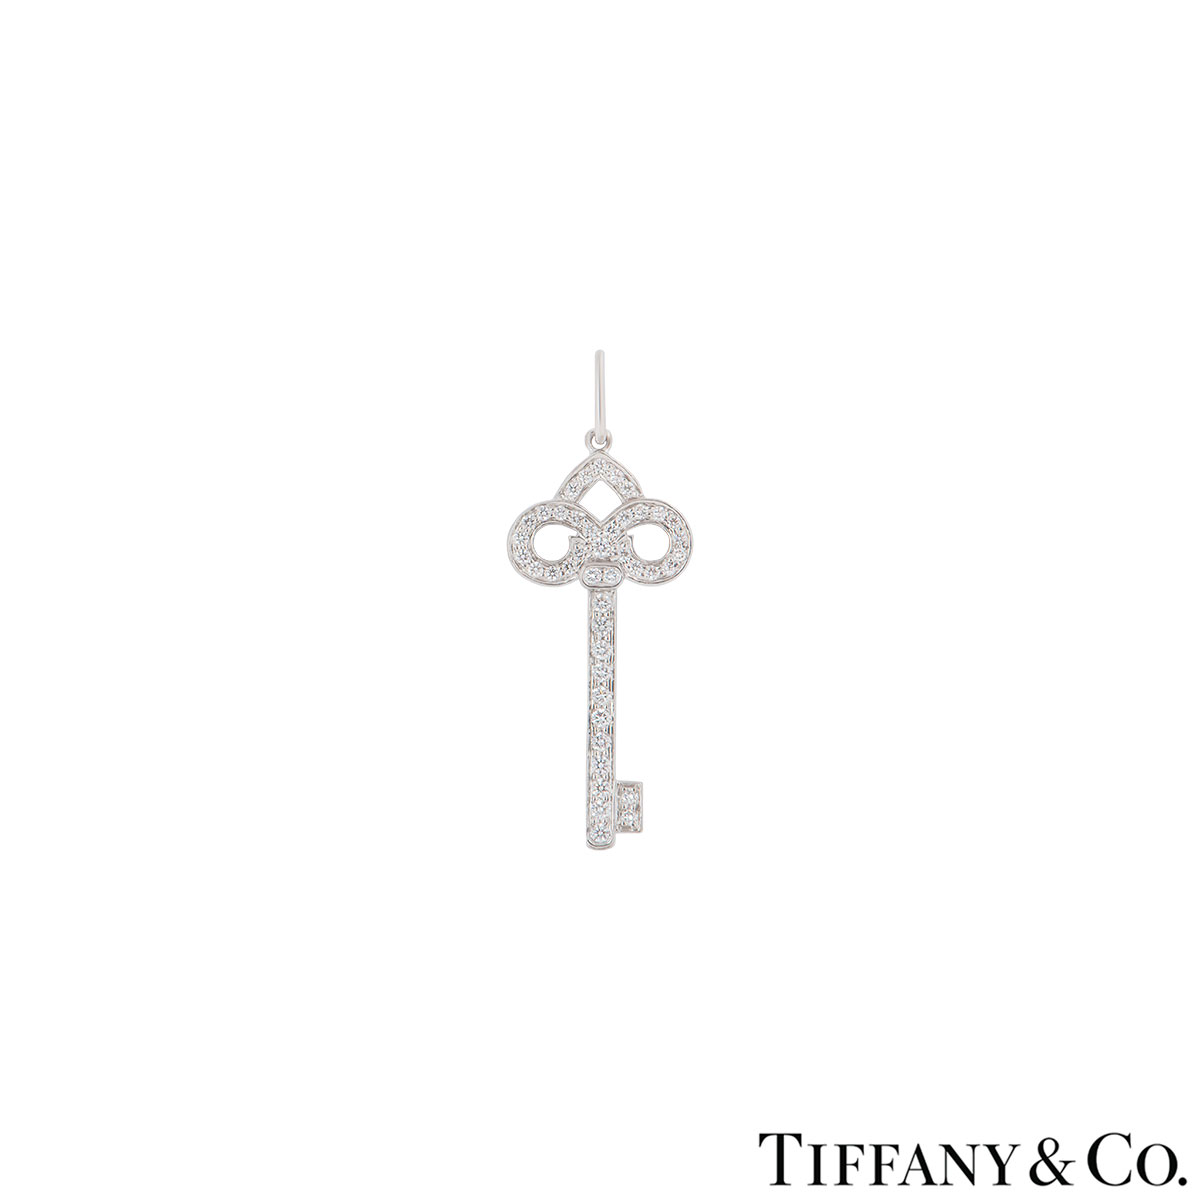 Tiffany & Co. Platinum Diamond Fleur De Lis Key Pendant